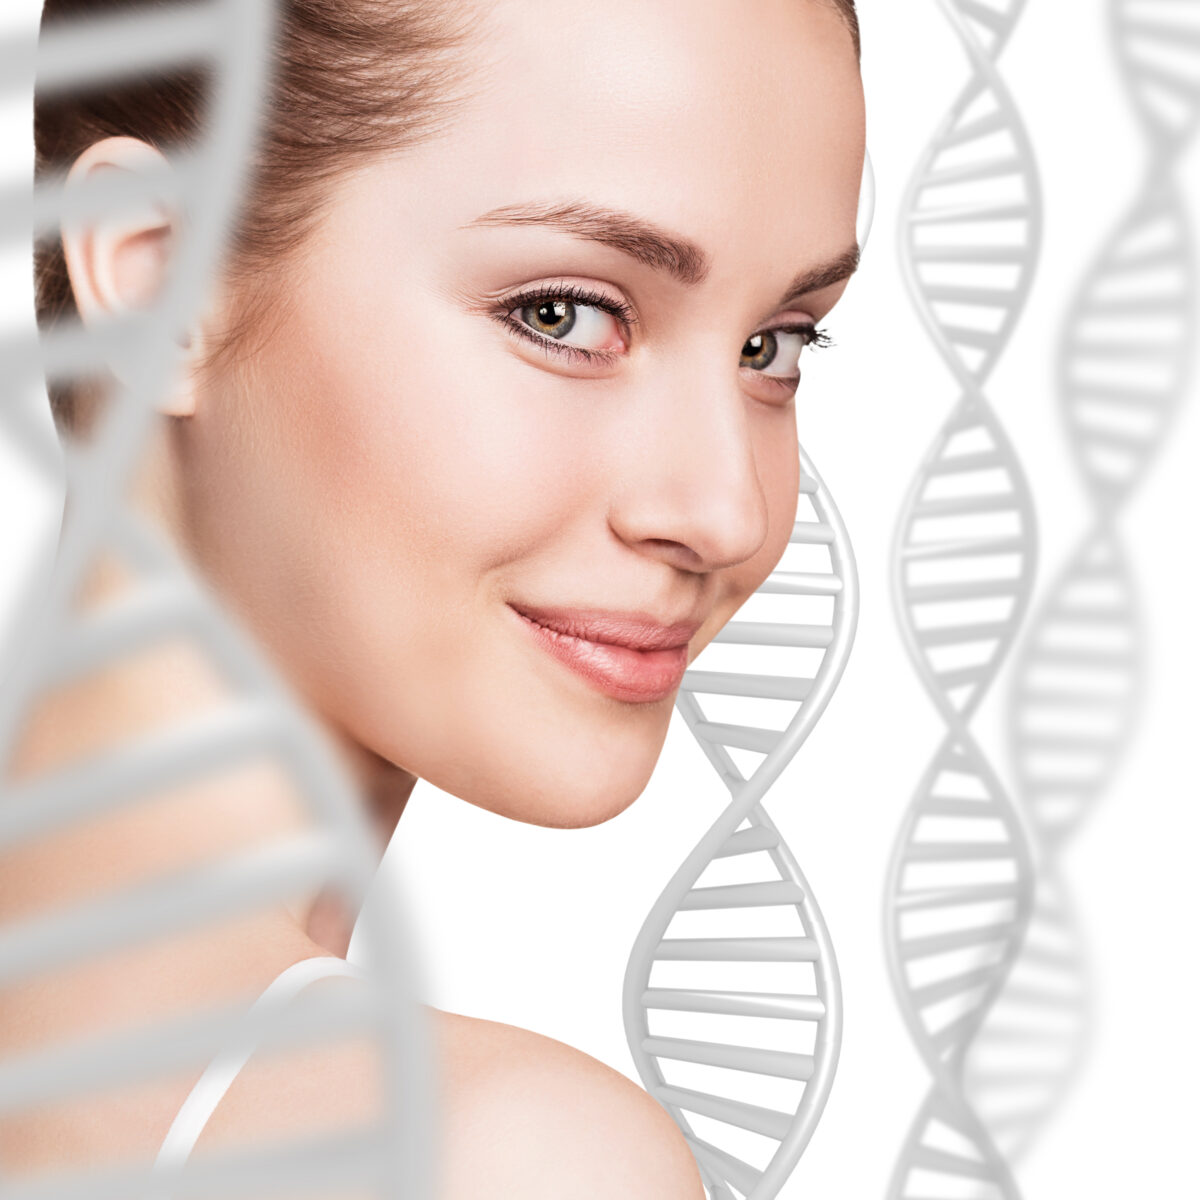 Dr-Baker-Miami-Stem-Cell-Therapy-1200x1200.jpg